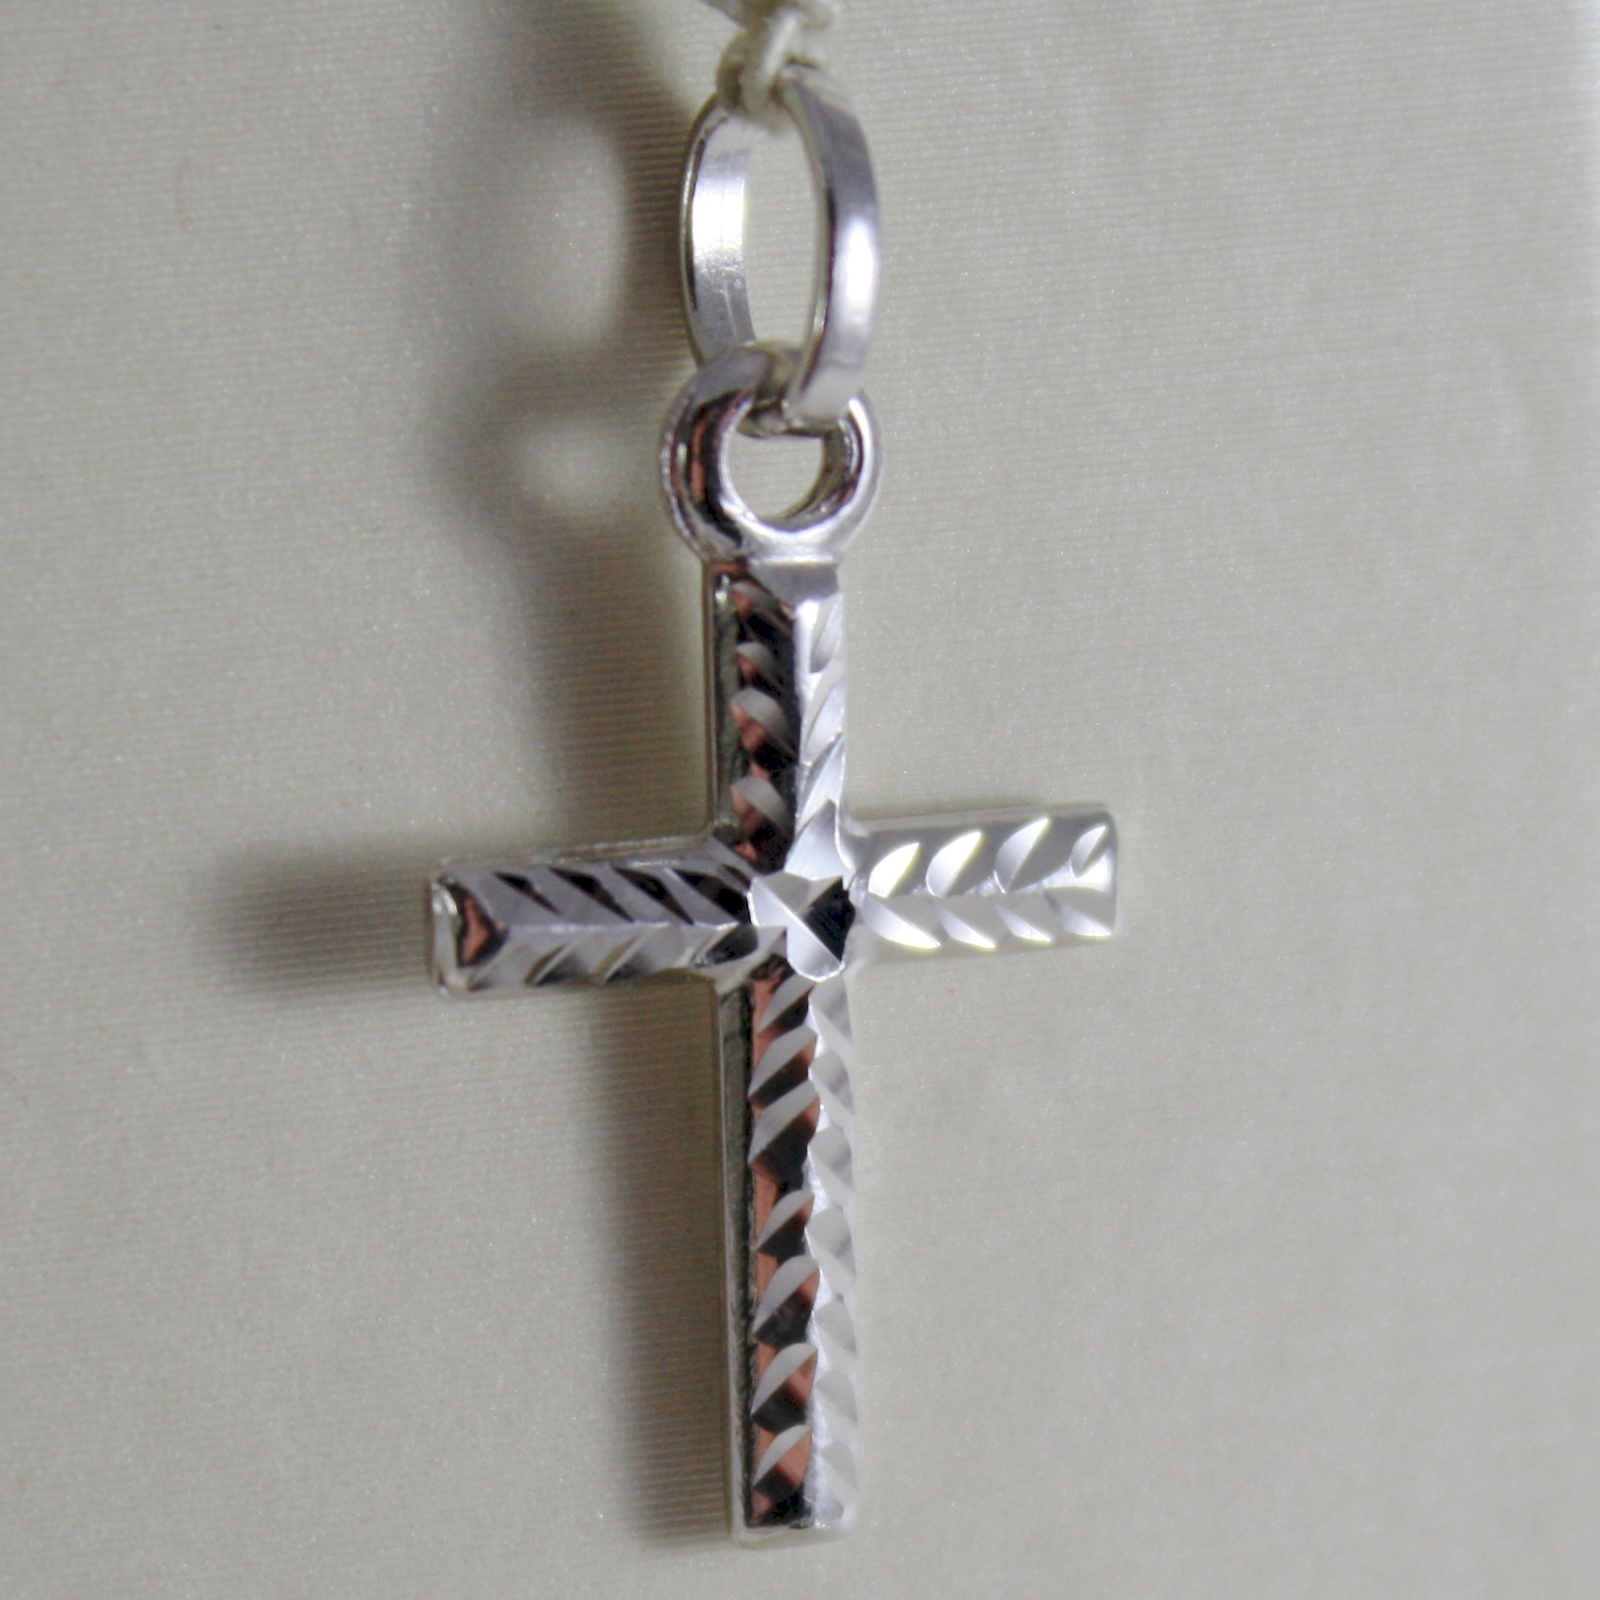 SOLID 18K WHITE GOLD CROSS, TUBE DOUBLE TWO FACES, HAMMERED, SHINY, MADE IN ITAL